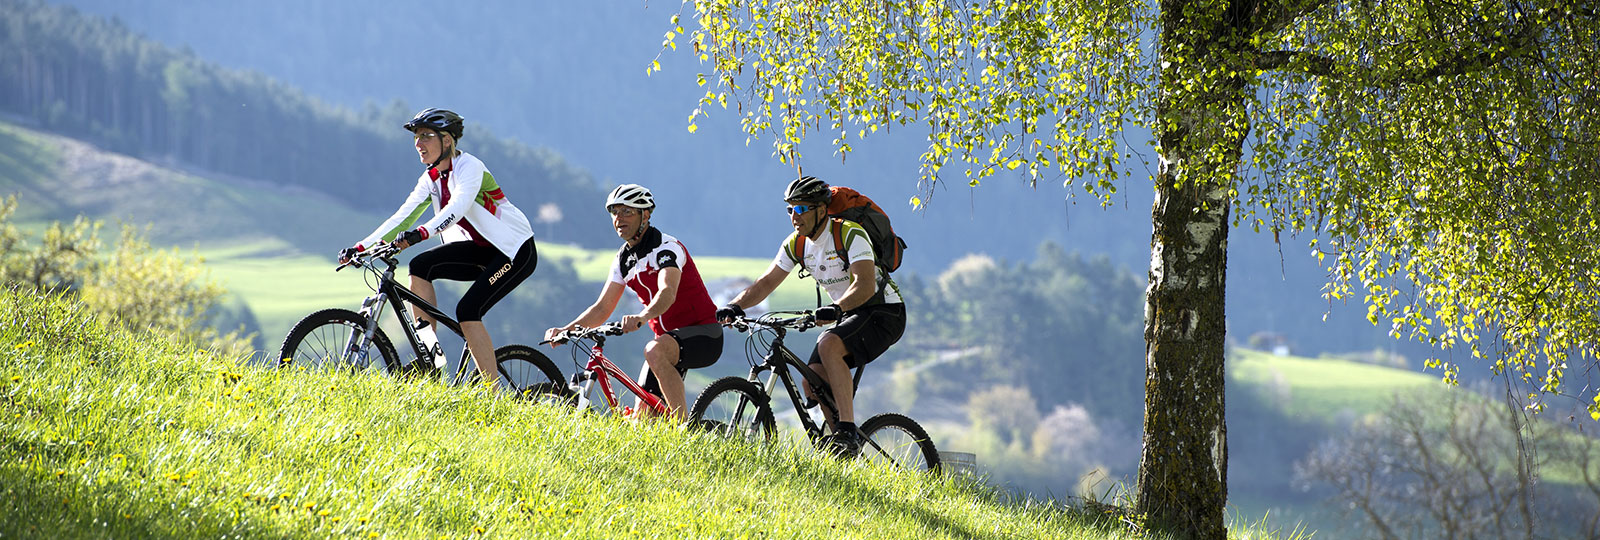 mountainbiken-seis